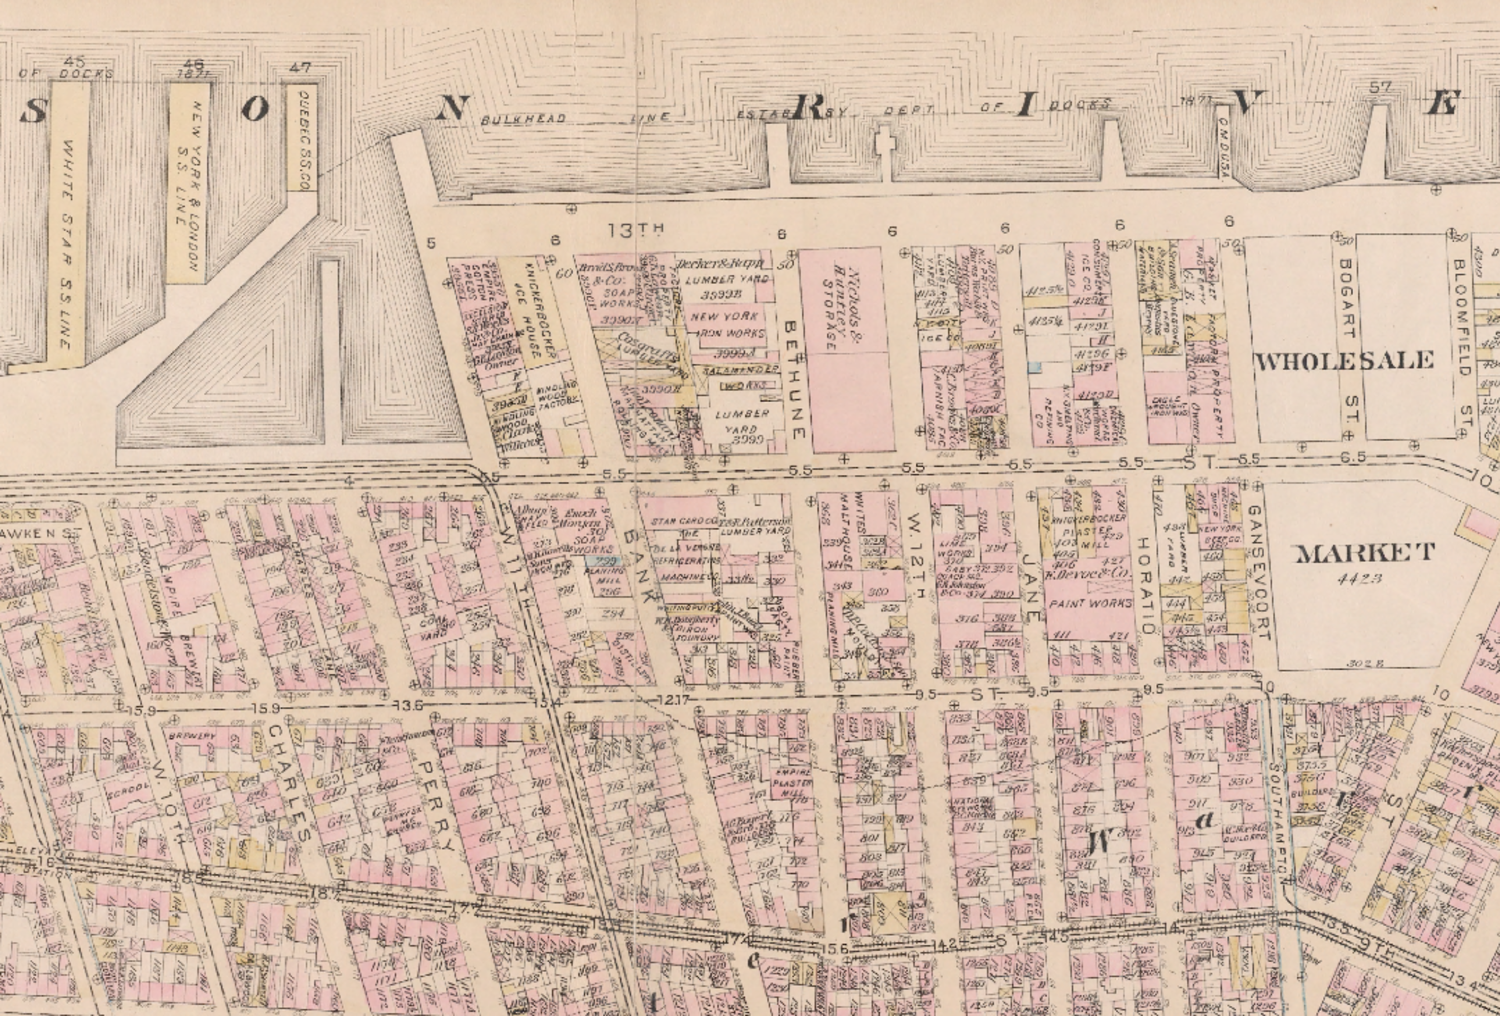 Detail of an 1885 map showing 13th Avenue